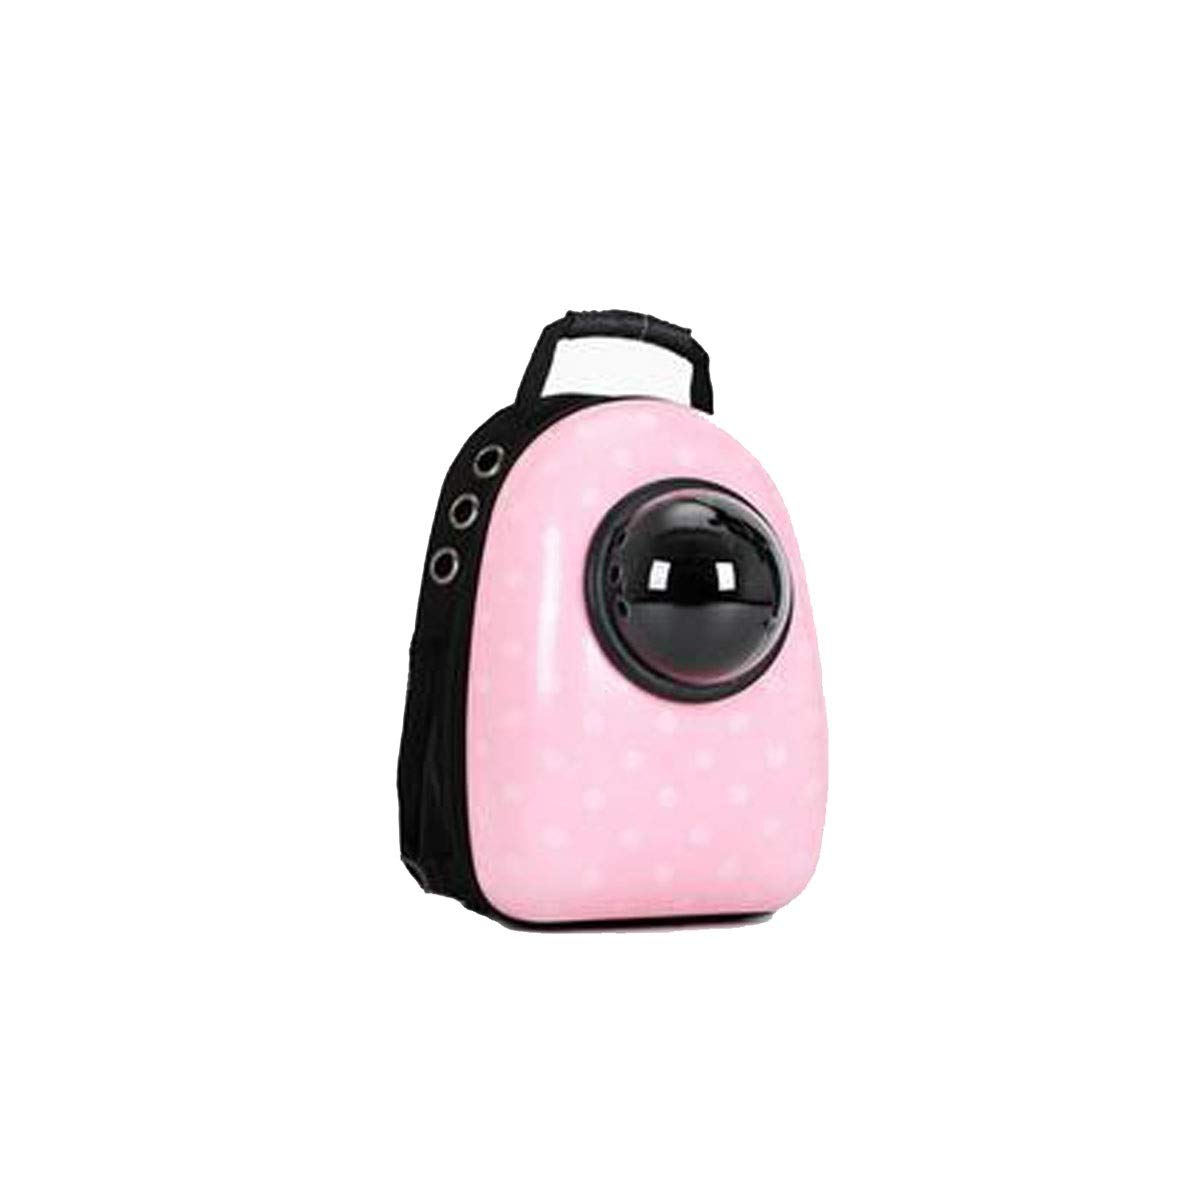 Pink Transparent pet Carrier for Cats, Waterproof Puppy Travel Bag, Breathable Airline Approved Space Capsule(Black, Pink, Yellow) (color   Pink)